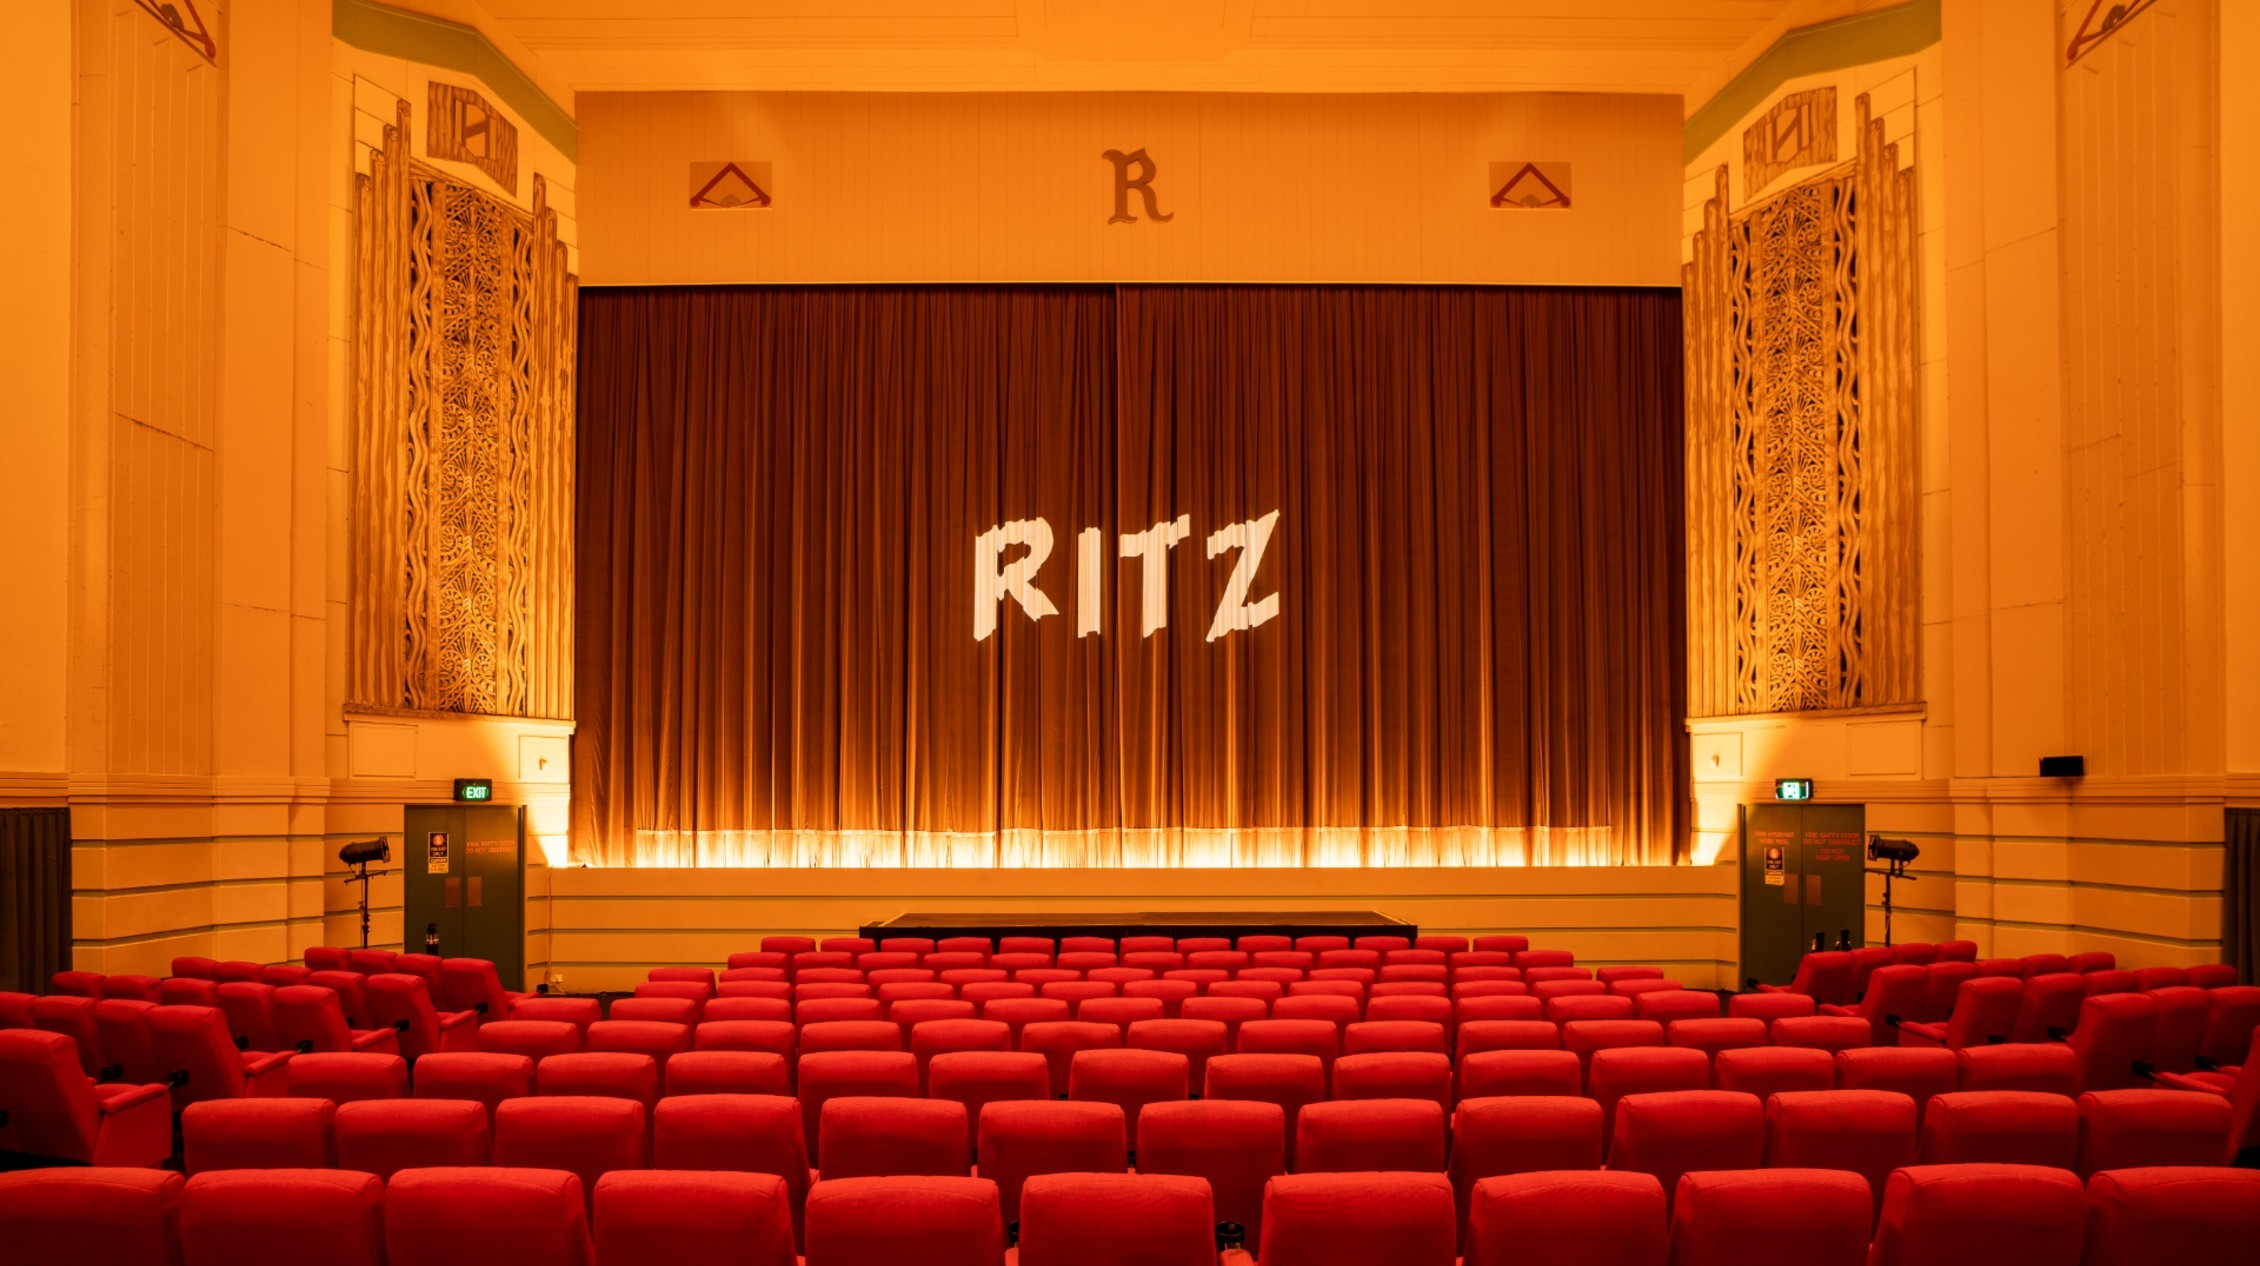 Q&A session will help reboot the Randwick Ritz offering